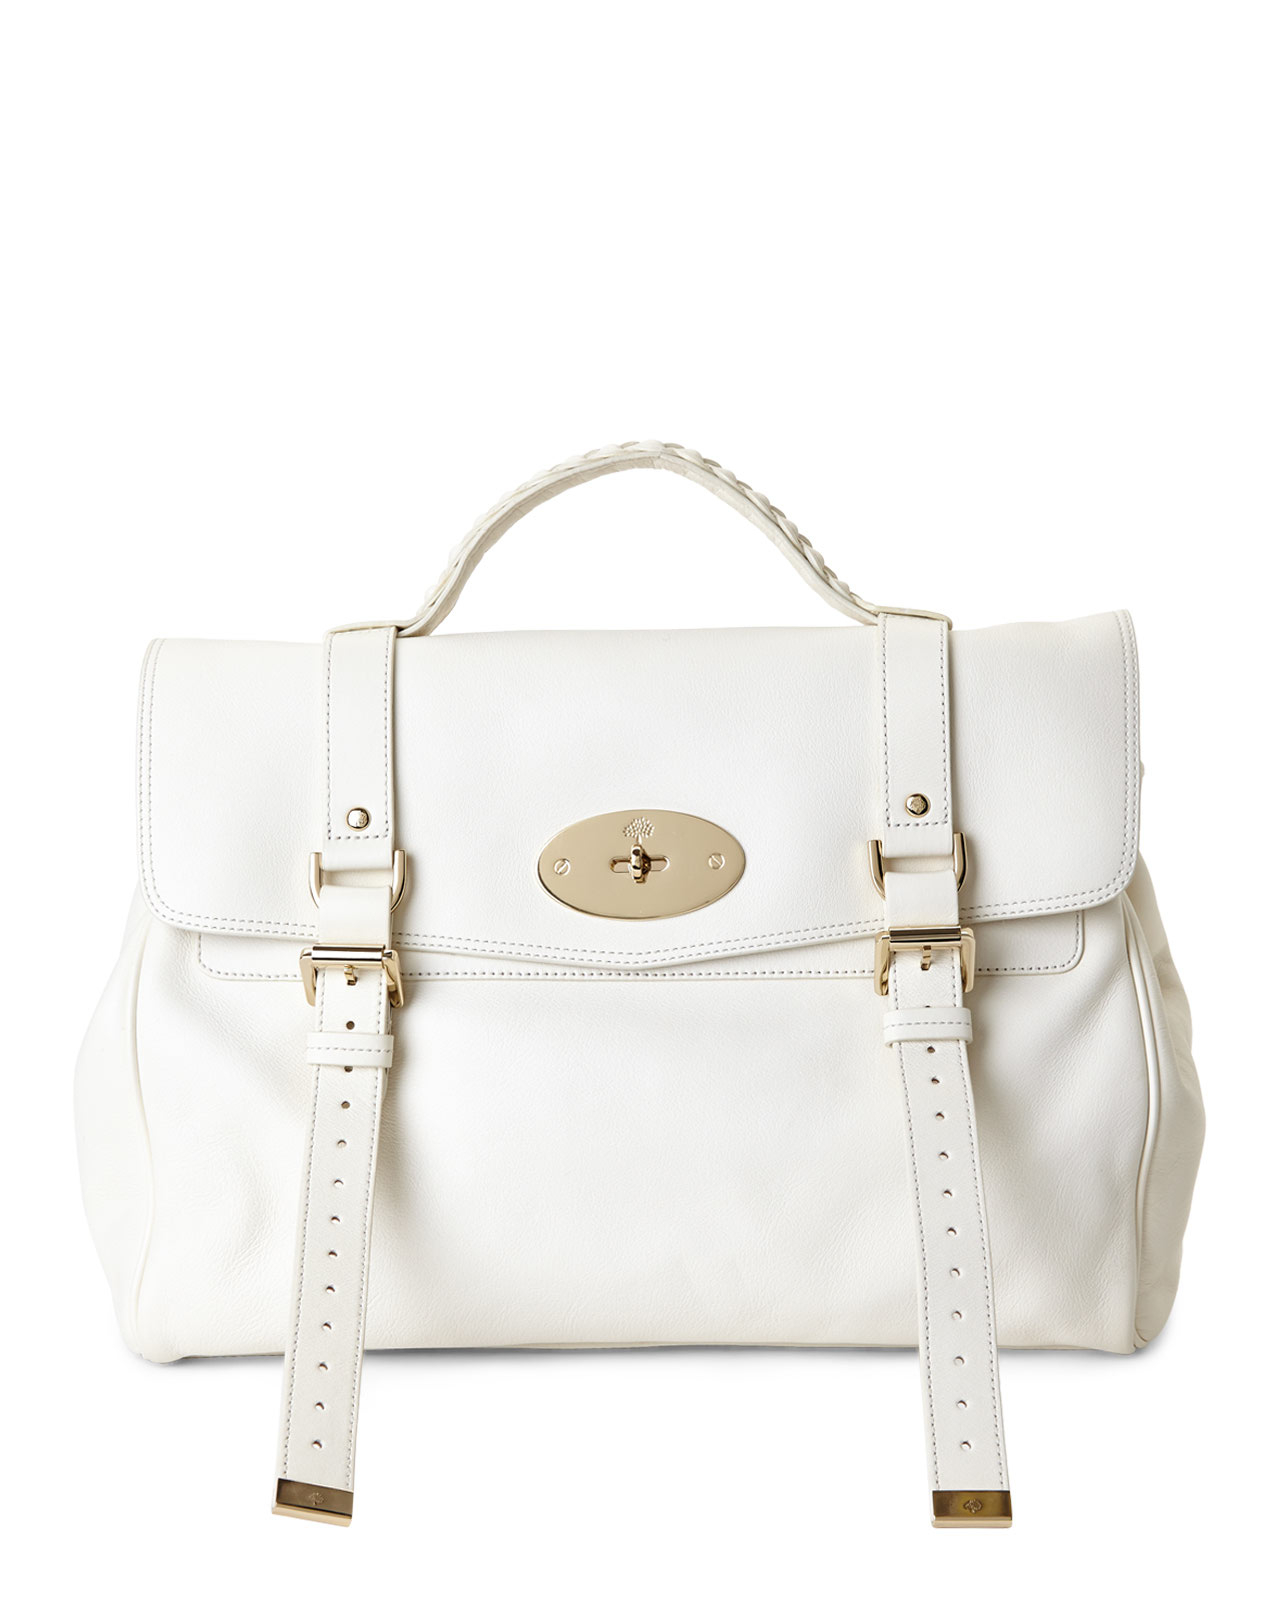 5dba48644b Lyst - Mulberry Cream Oversized Alexa Handbag in White